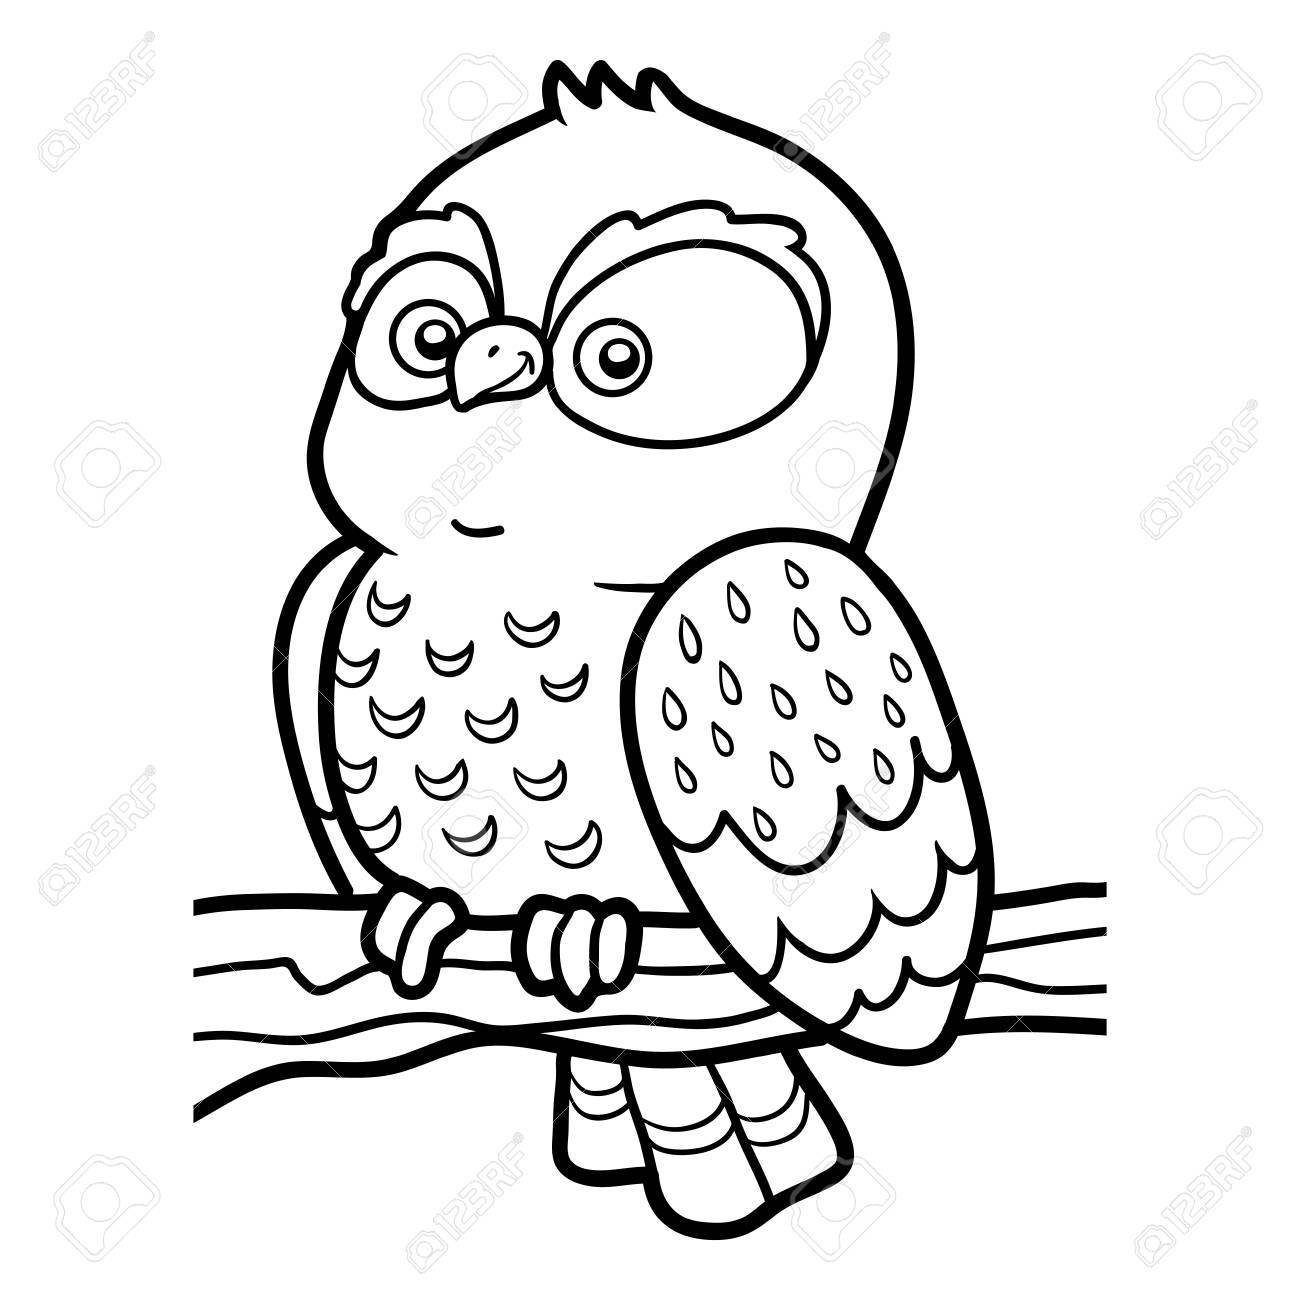 Coloring Book For Children, Coloring Page With Little Owl Royalty ...